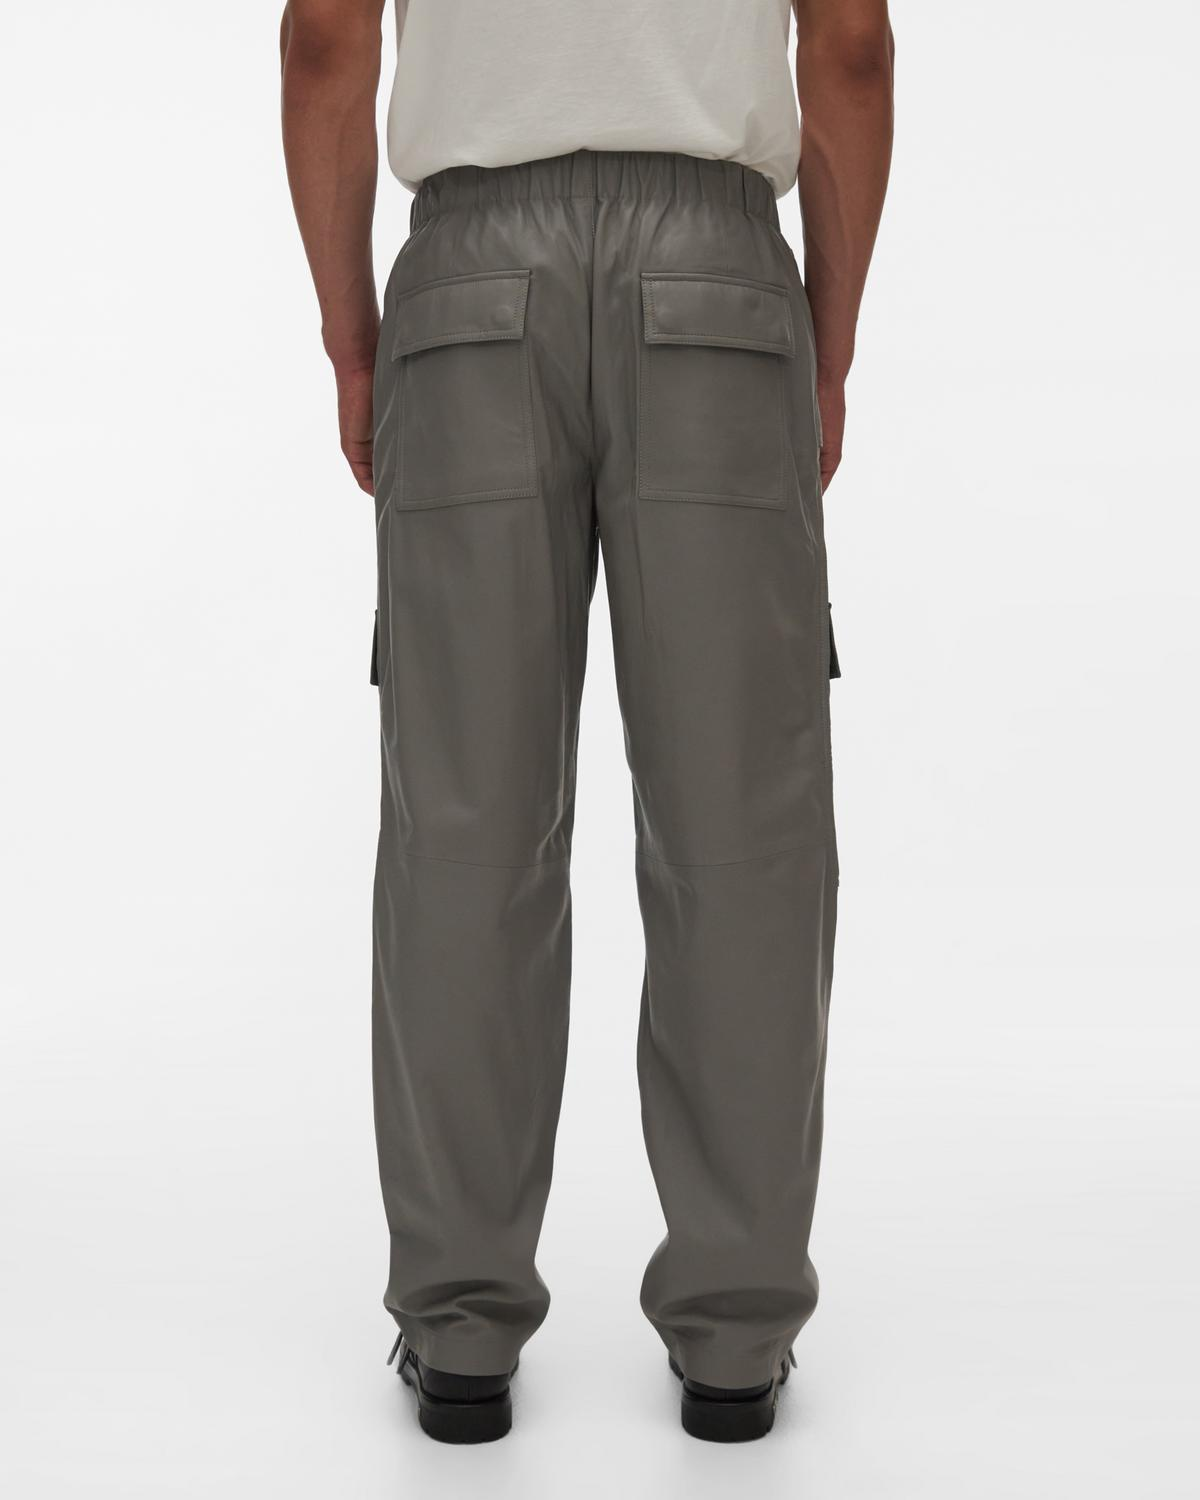 Leather Utility Pant